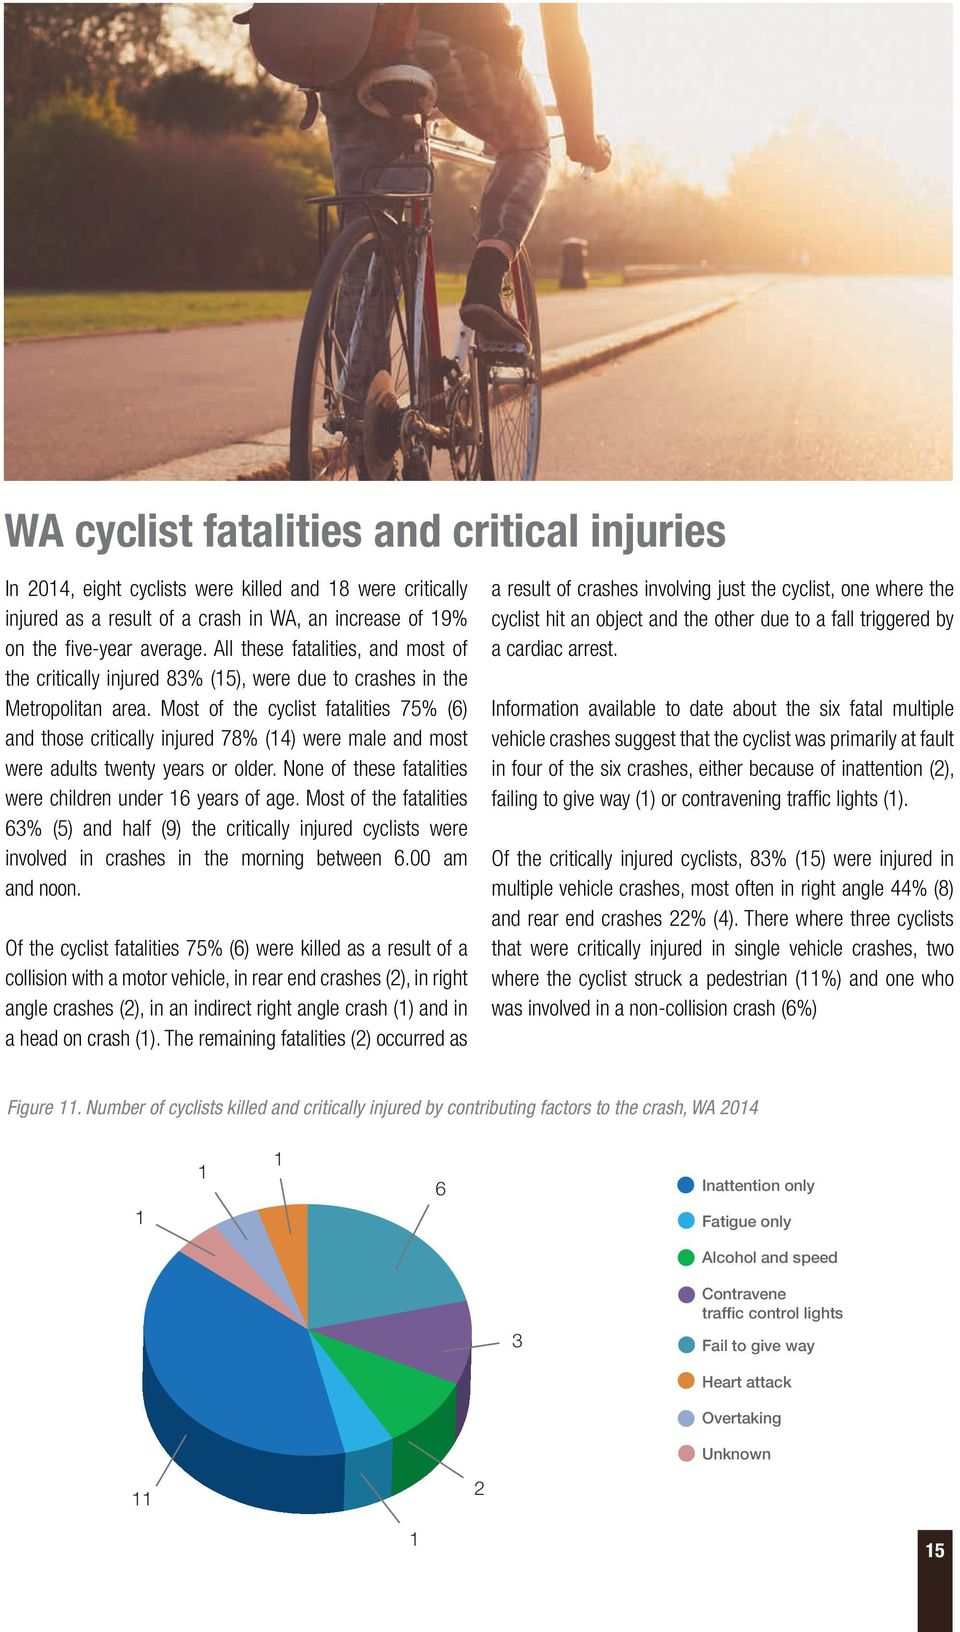 Most of the cyclist fatalities 75% (6) and those critically injured 78% (4) were male and most were adults twenty years or older. None of these fatalities were children under 6 years of age.